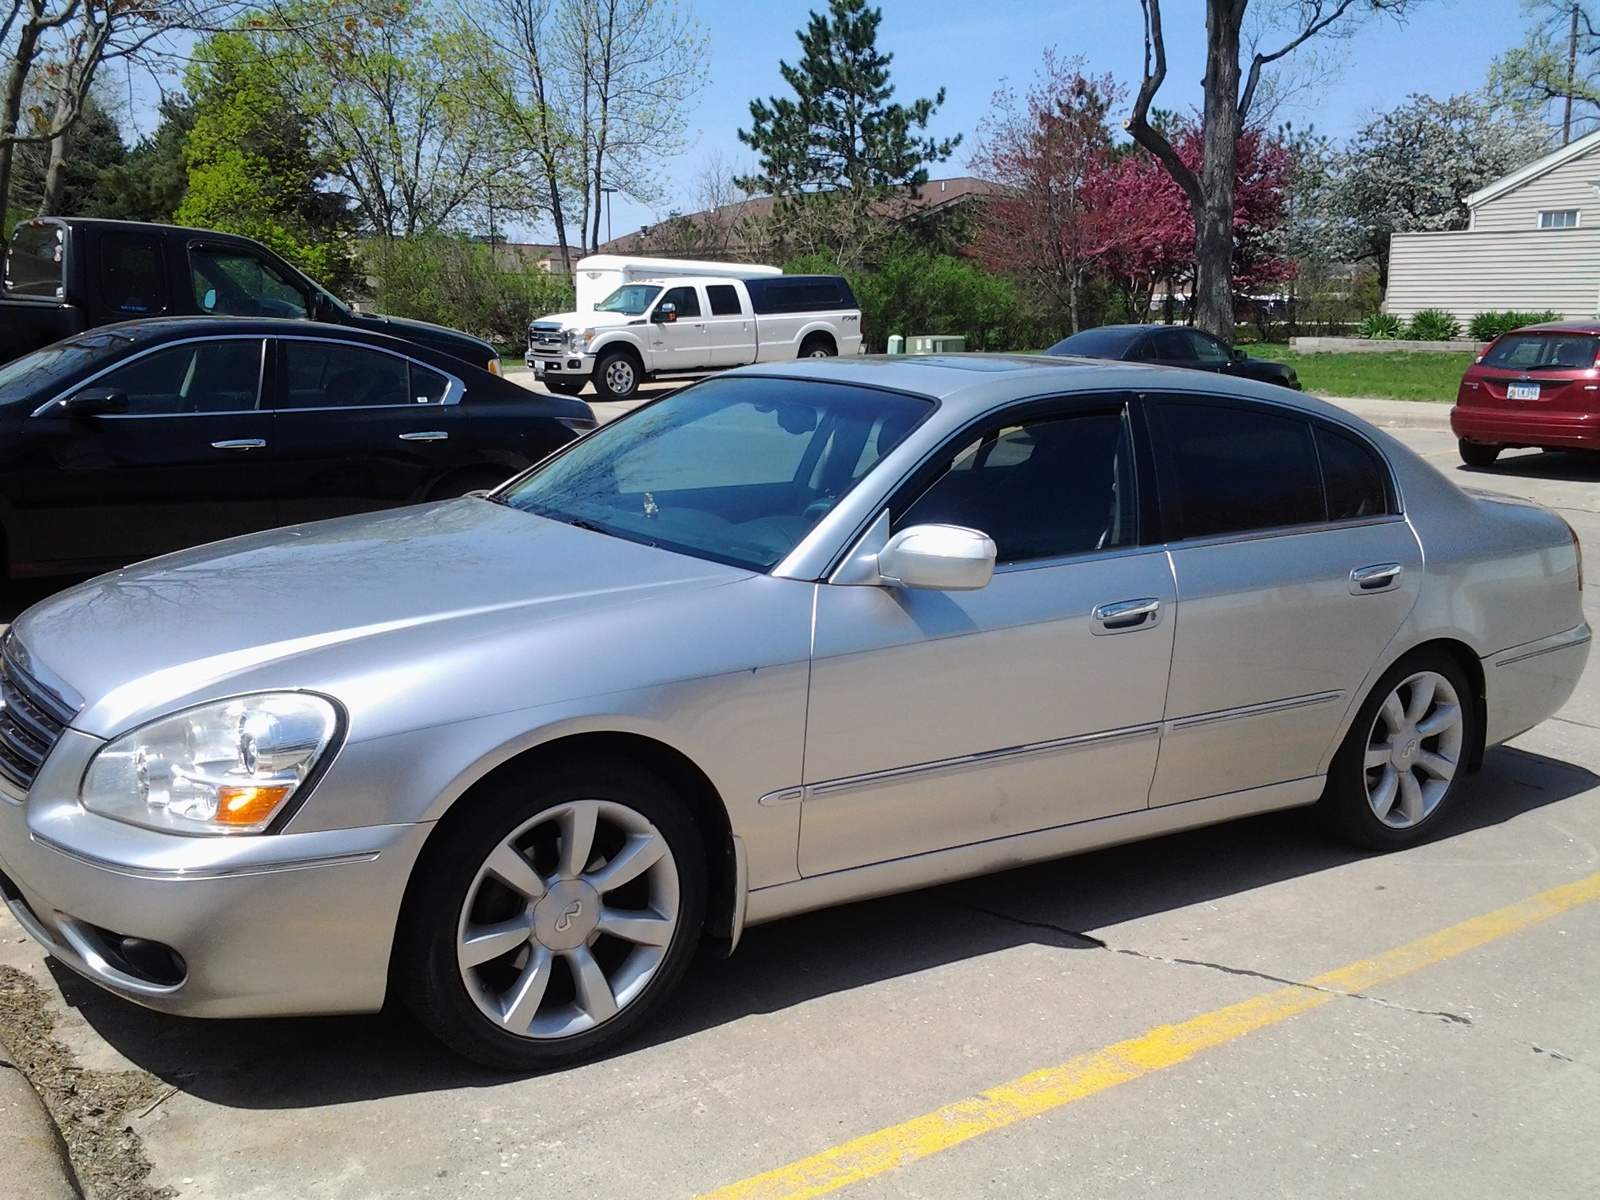 Picture of 2005 Infiniti Q45 4 Dr STD Sedan